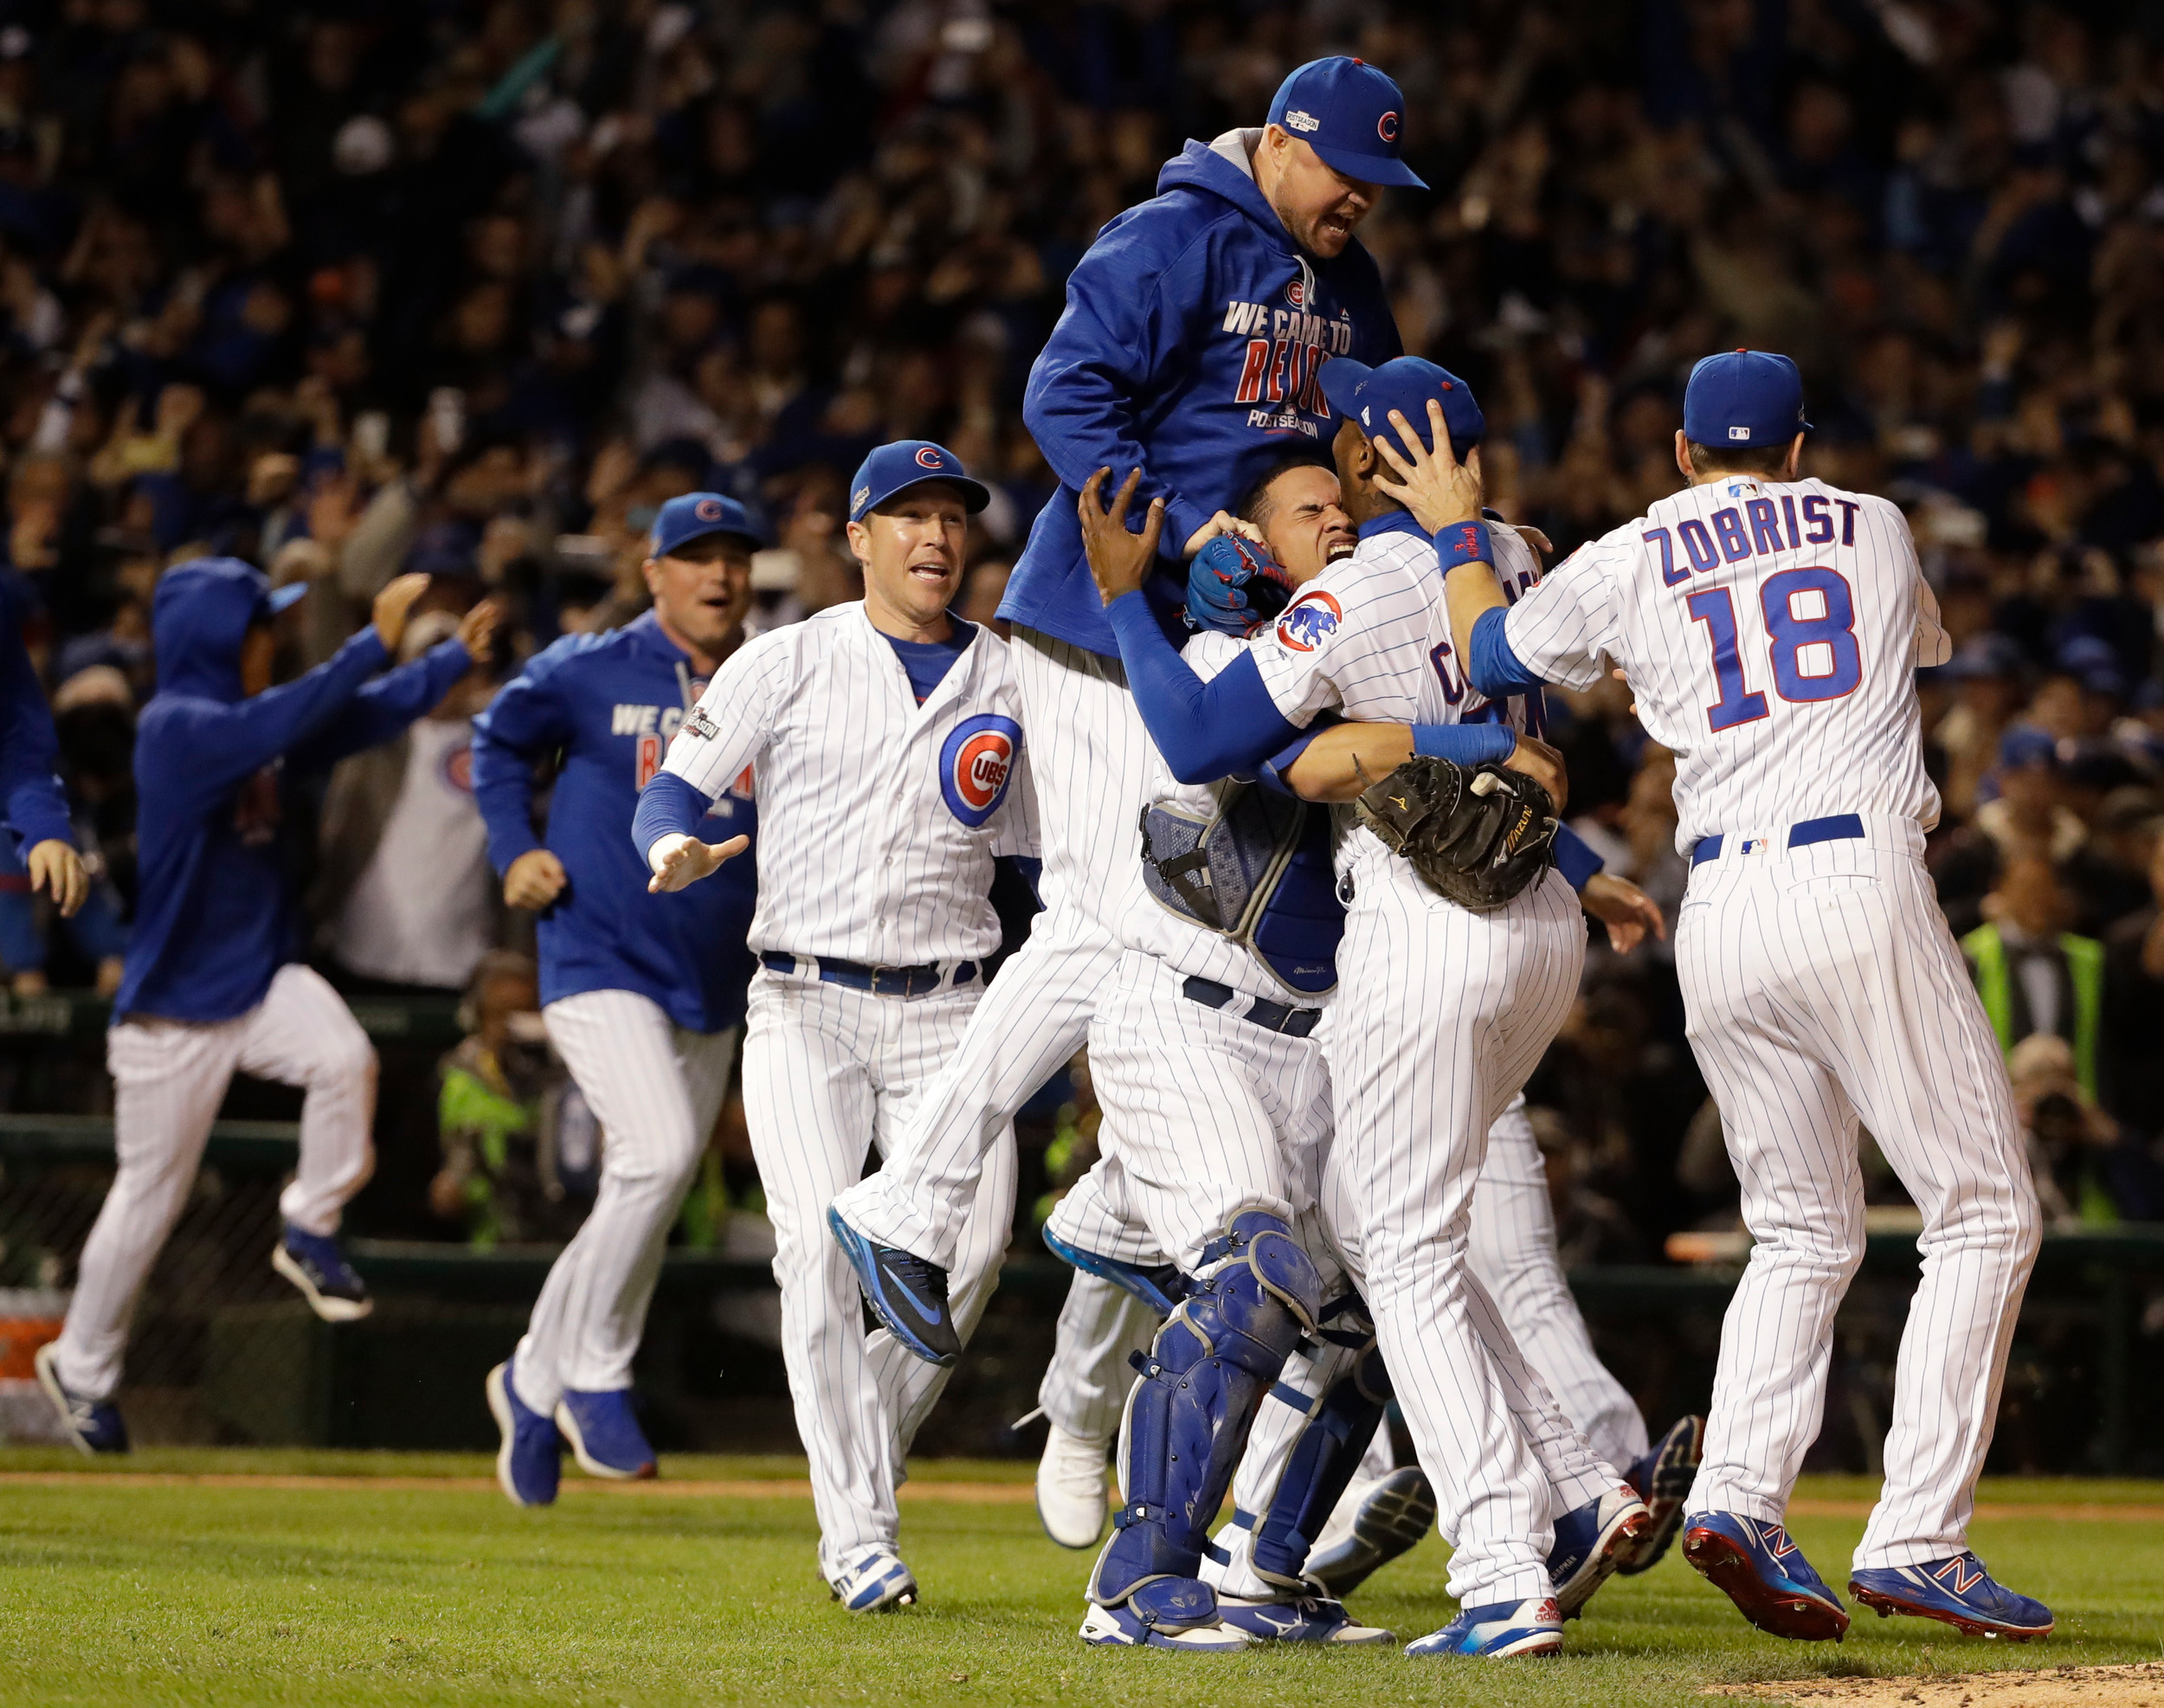 Cubs beat Dodgers 5-0 to reach World Series   The Sumter Item